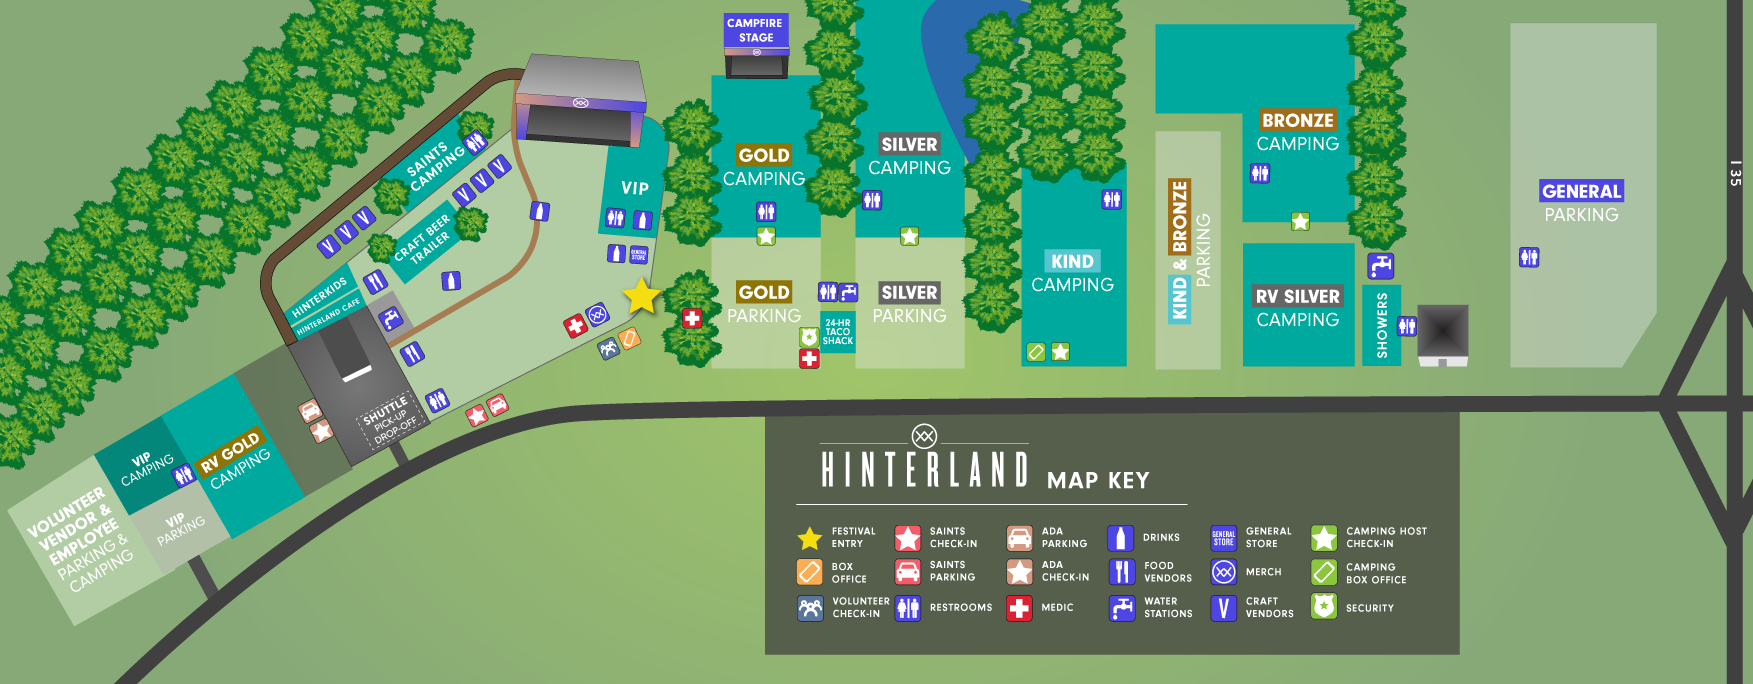 Hinterland Music Festival map